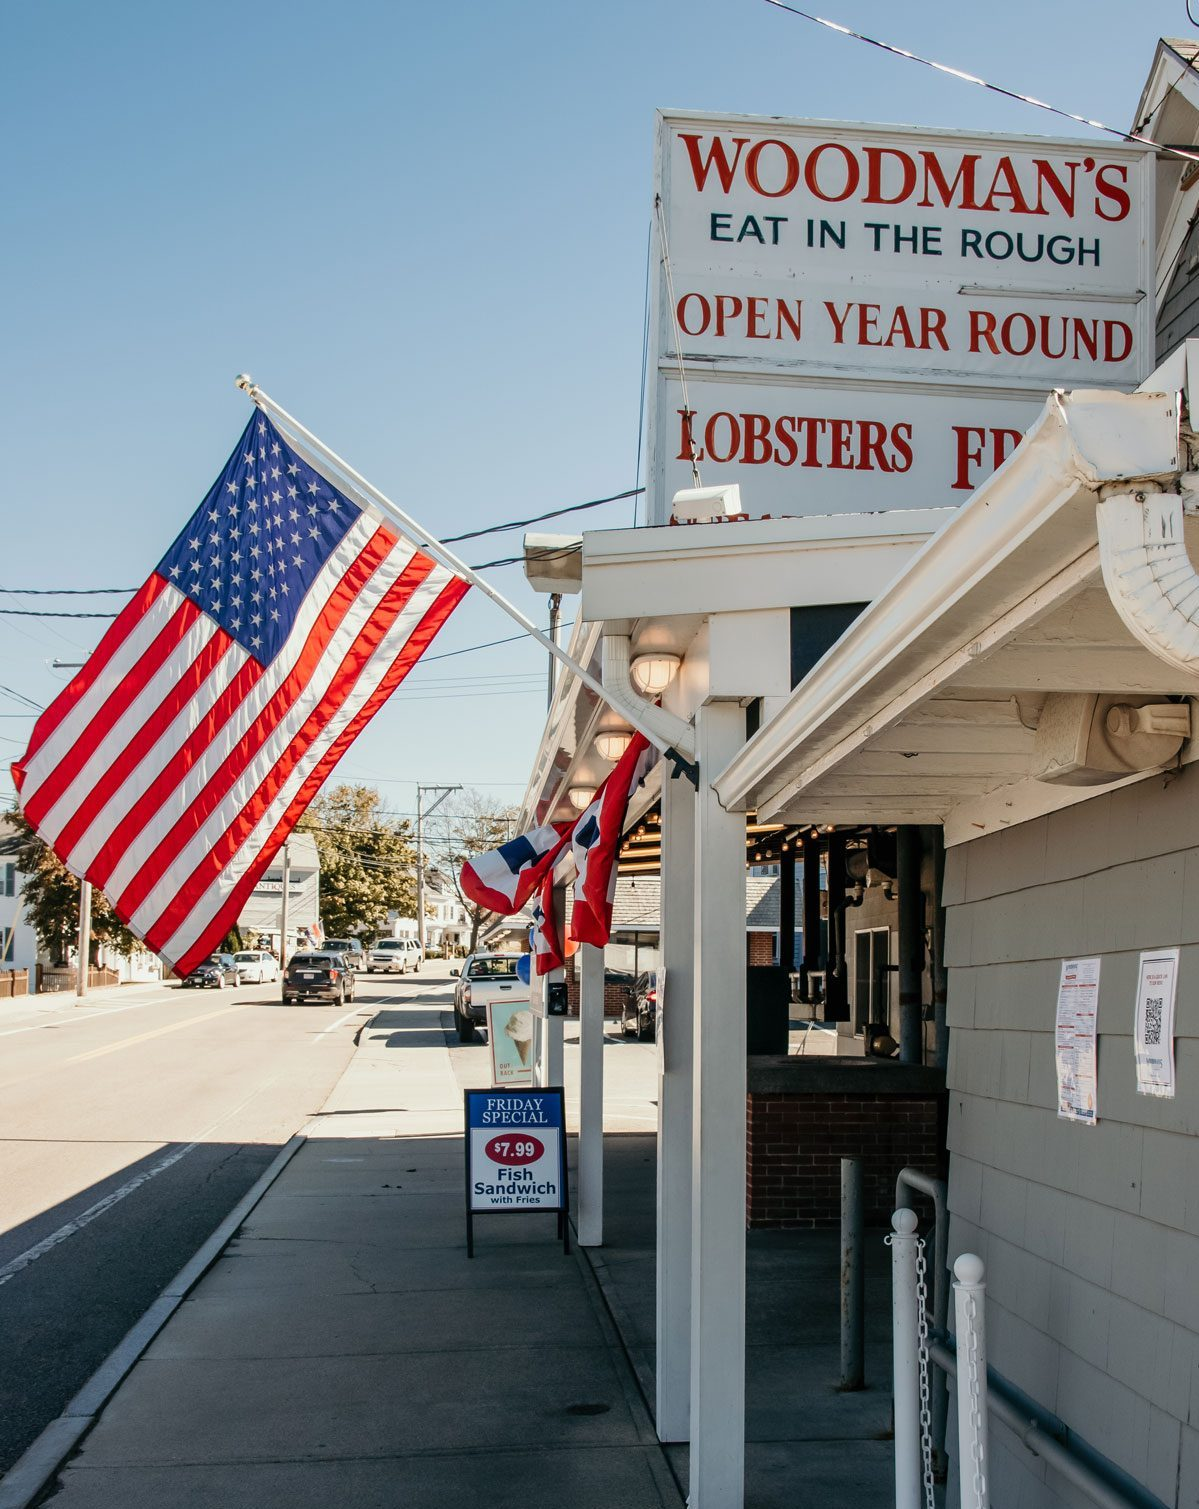 The front entry of Woodman's Clam Strip.